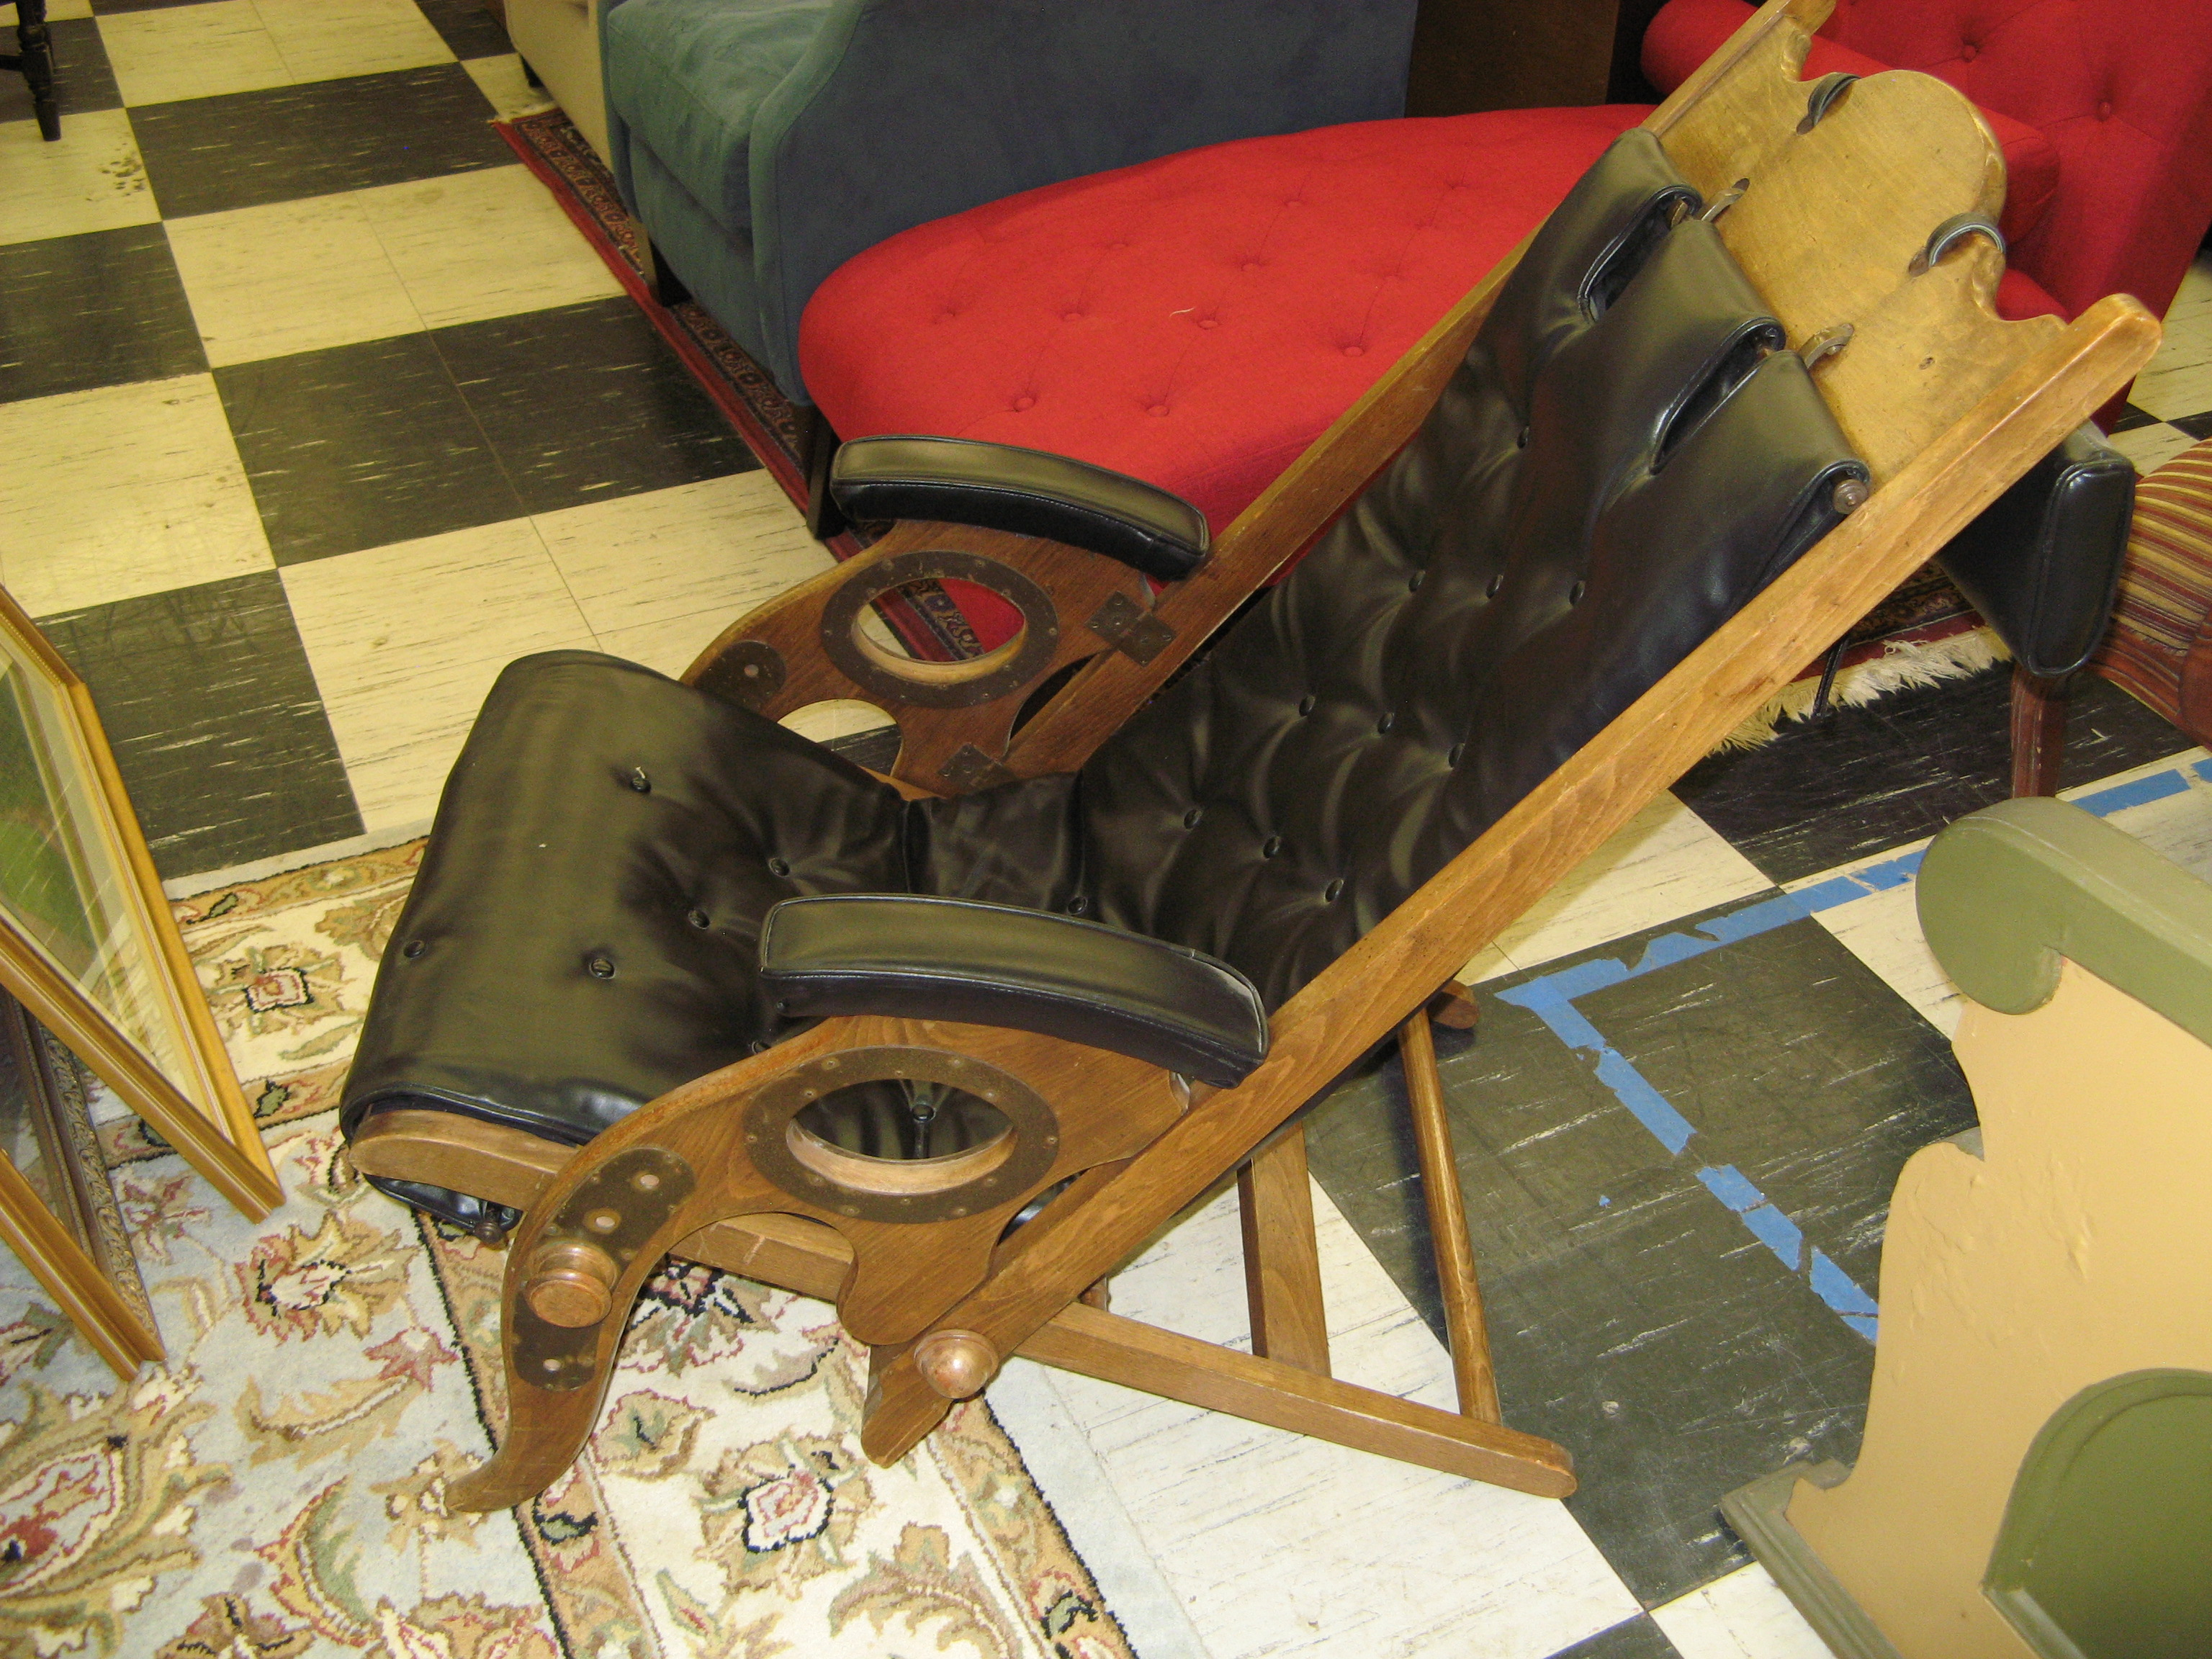 Vintage Adjustable Low Sitting Recliner, Rustic/Industrial